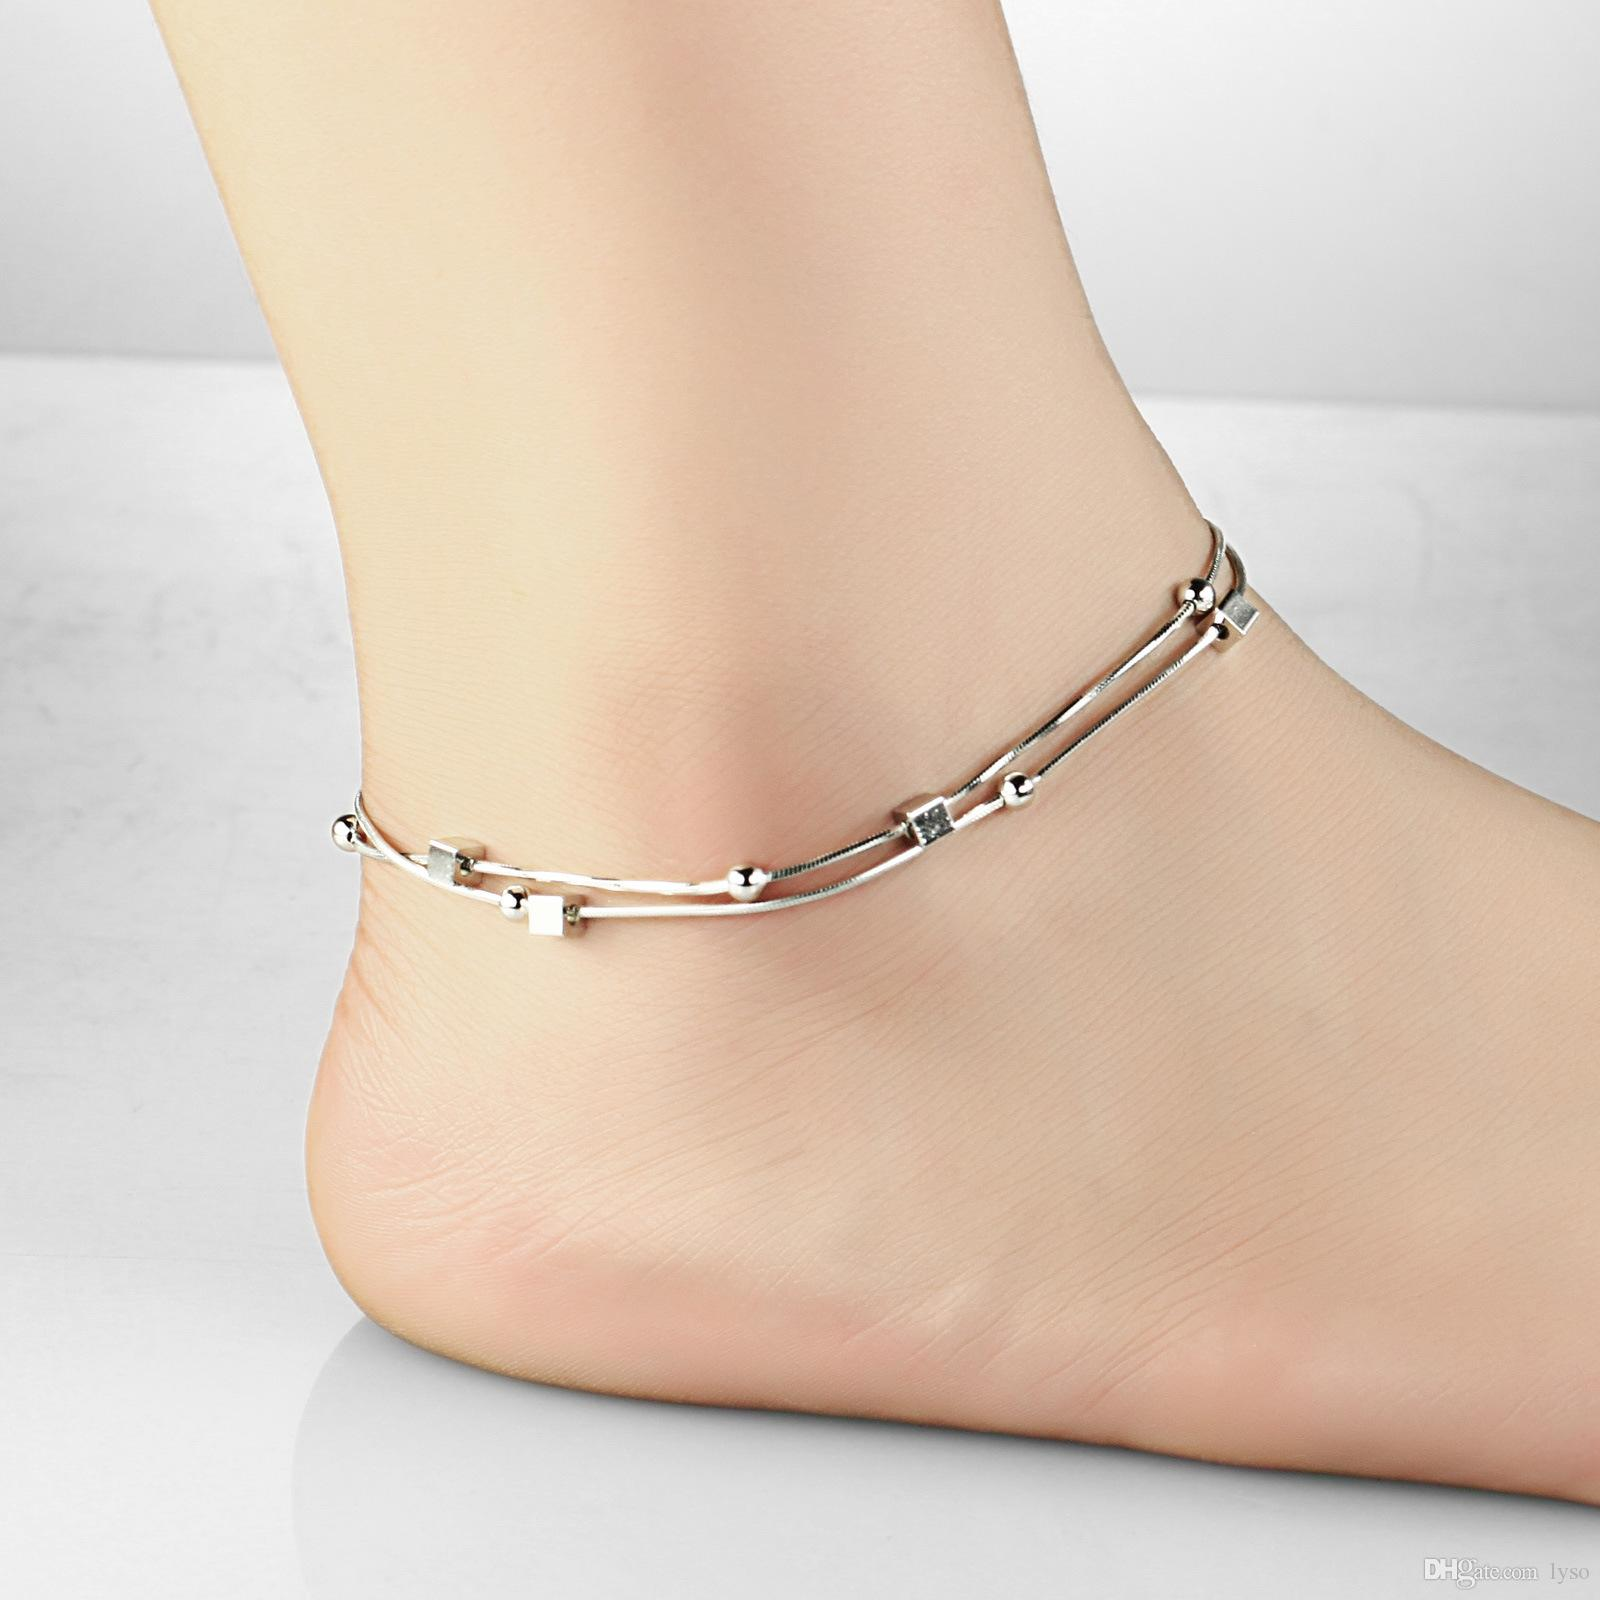 trendy female item ankle bell fishsheep for barefoot from anklets color chain multilayer sandals bracelets foot bohemian women style sliver beach s anklet jewelry ethnic in vintage